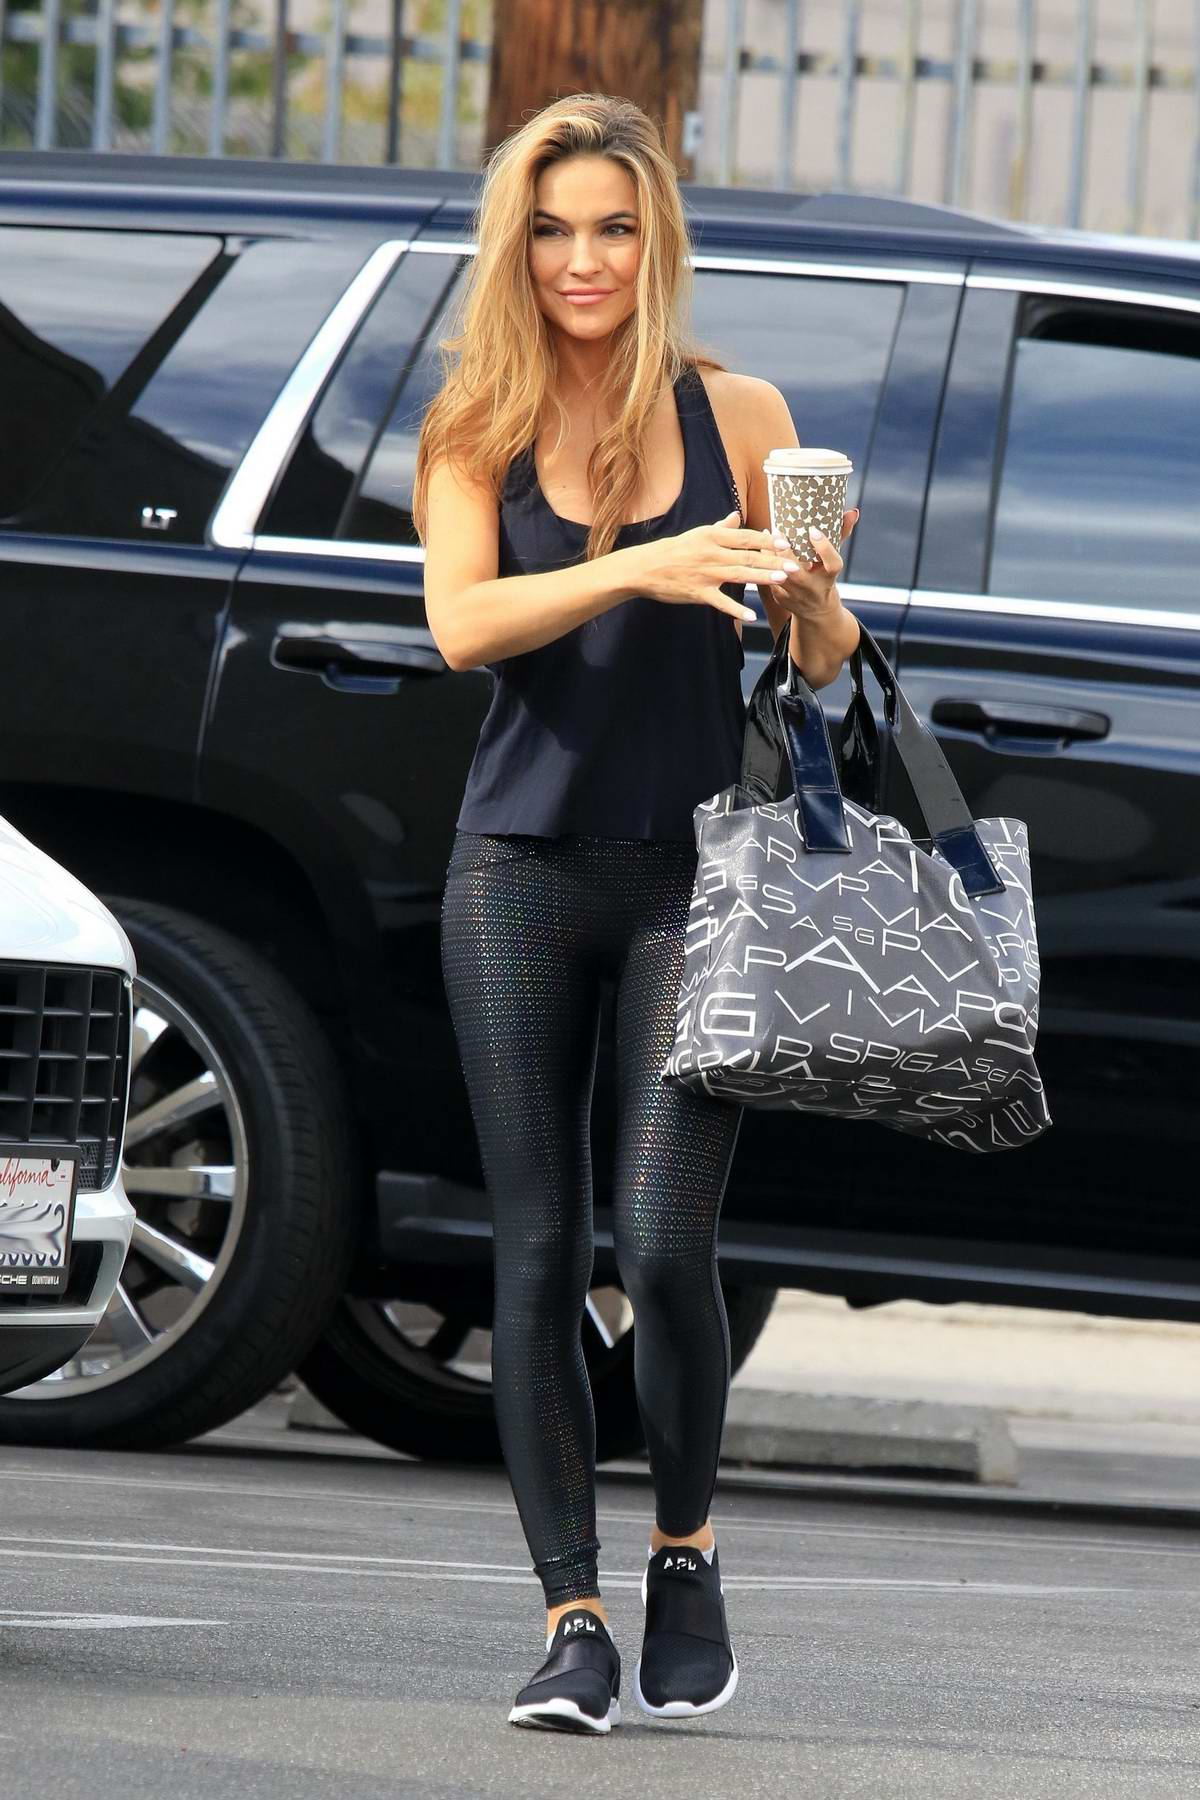 Chrishell Stause sports tank top and leggings as she heads into the DWTS studio for dance pratice in Los Angeles